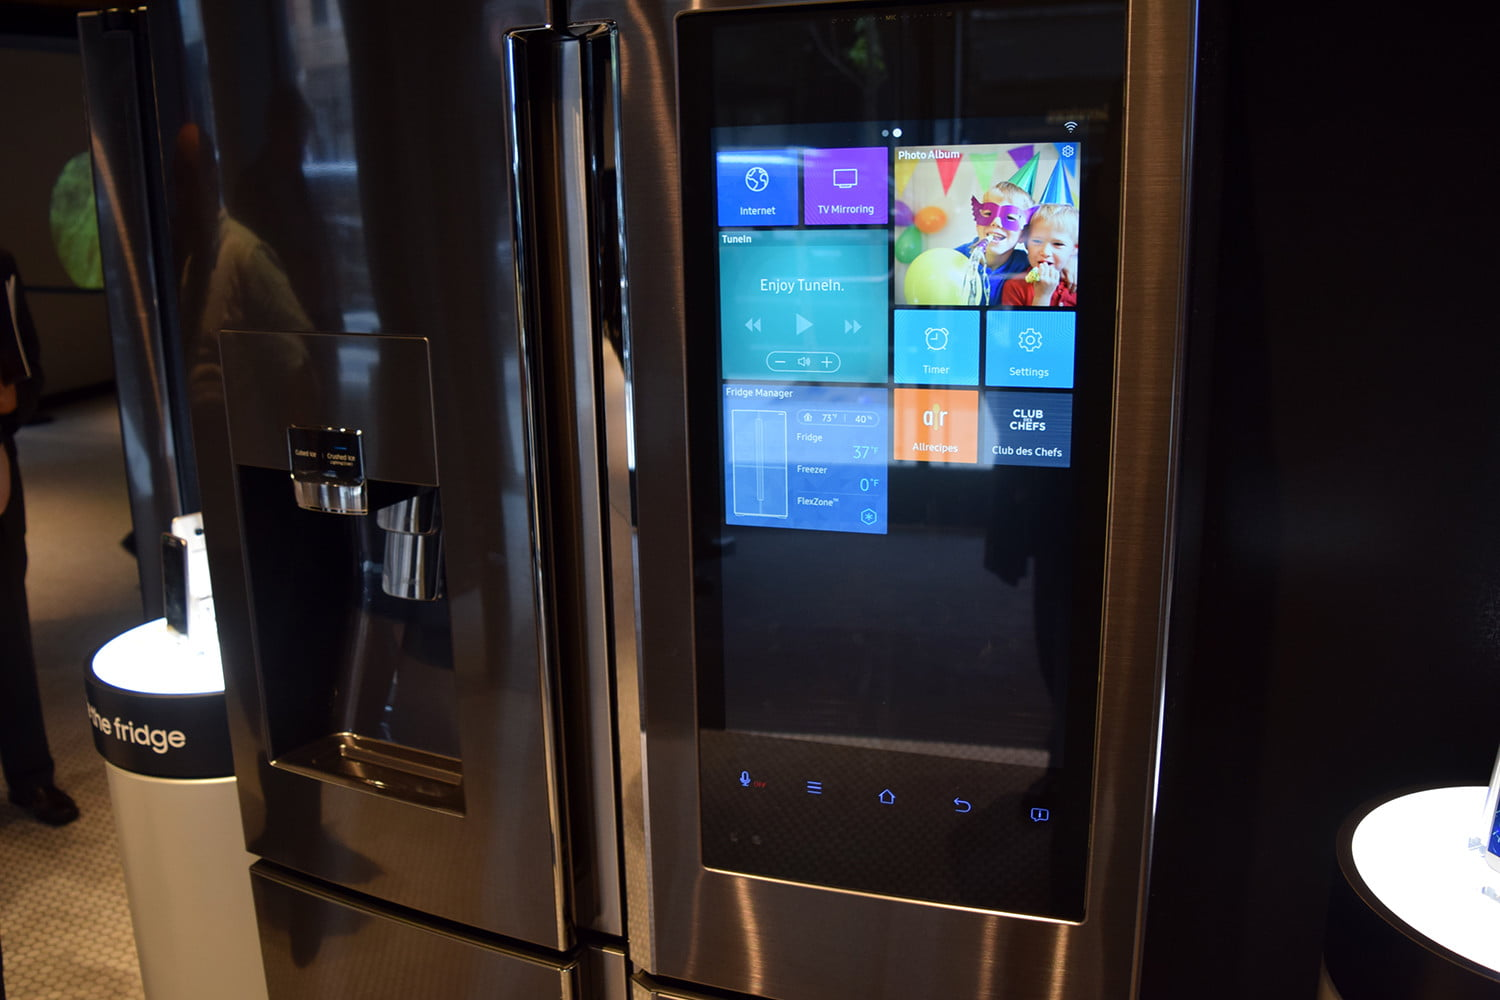 samsung family hub refrigerator hands on digital trends. Black Bedroom Furniture Sets. Home Design Ideas